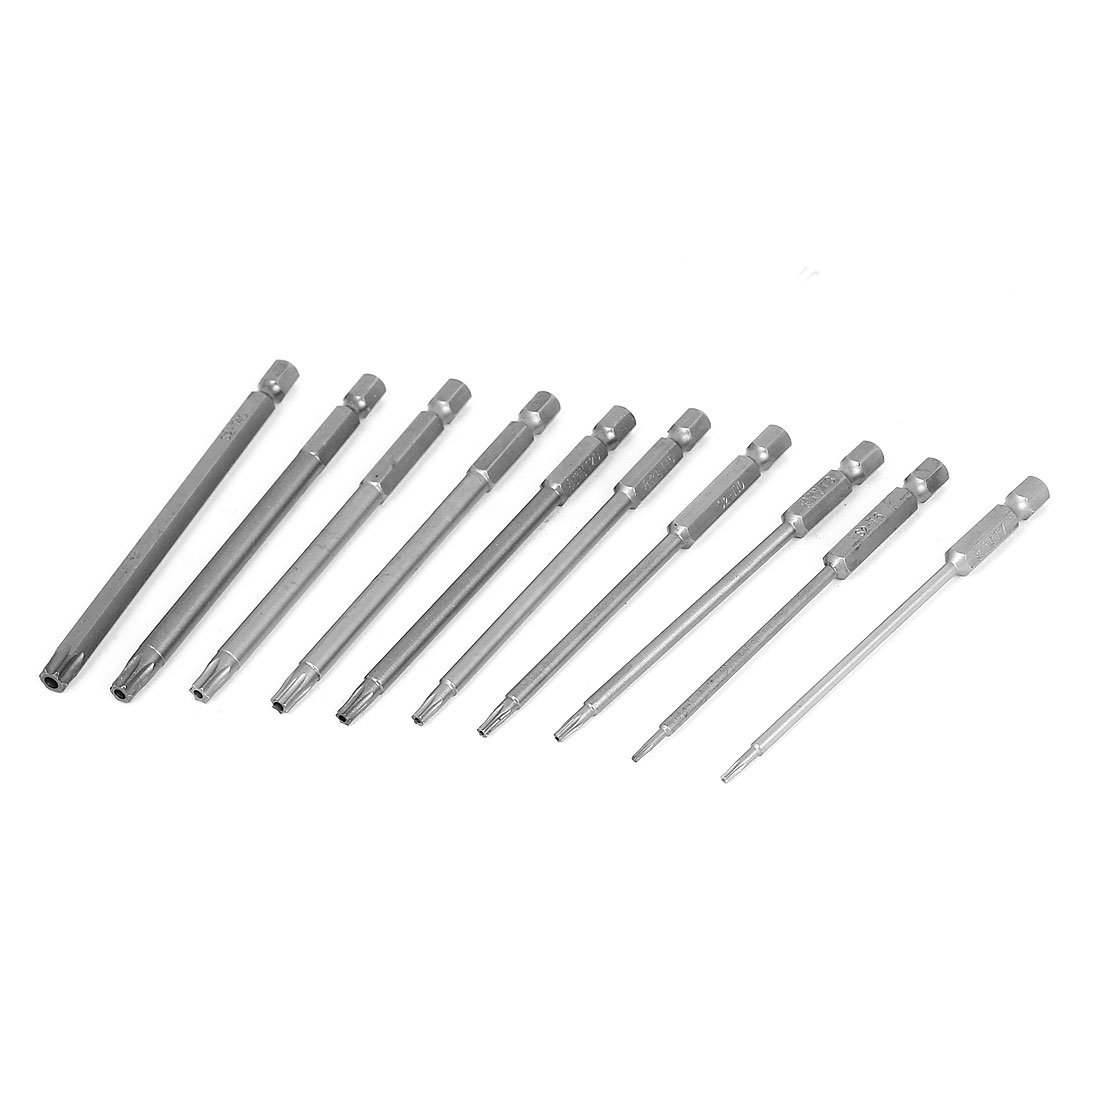 100mm Long Magnetic Torx Security Electric Screwdriver Bit Set 10 In 1 uxcell a15072800ux0337